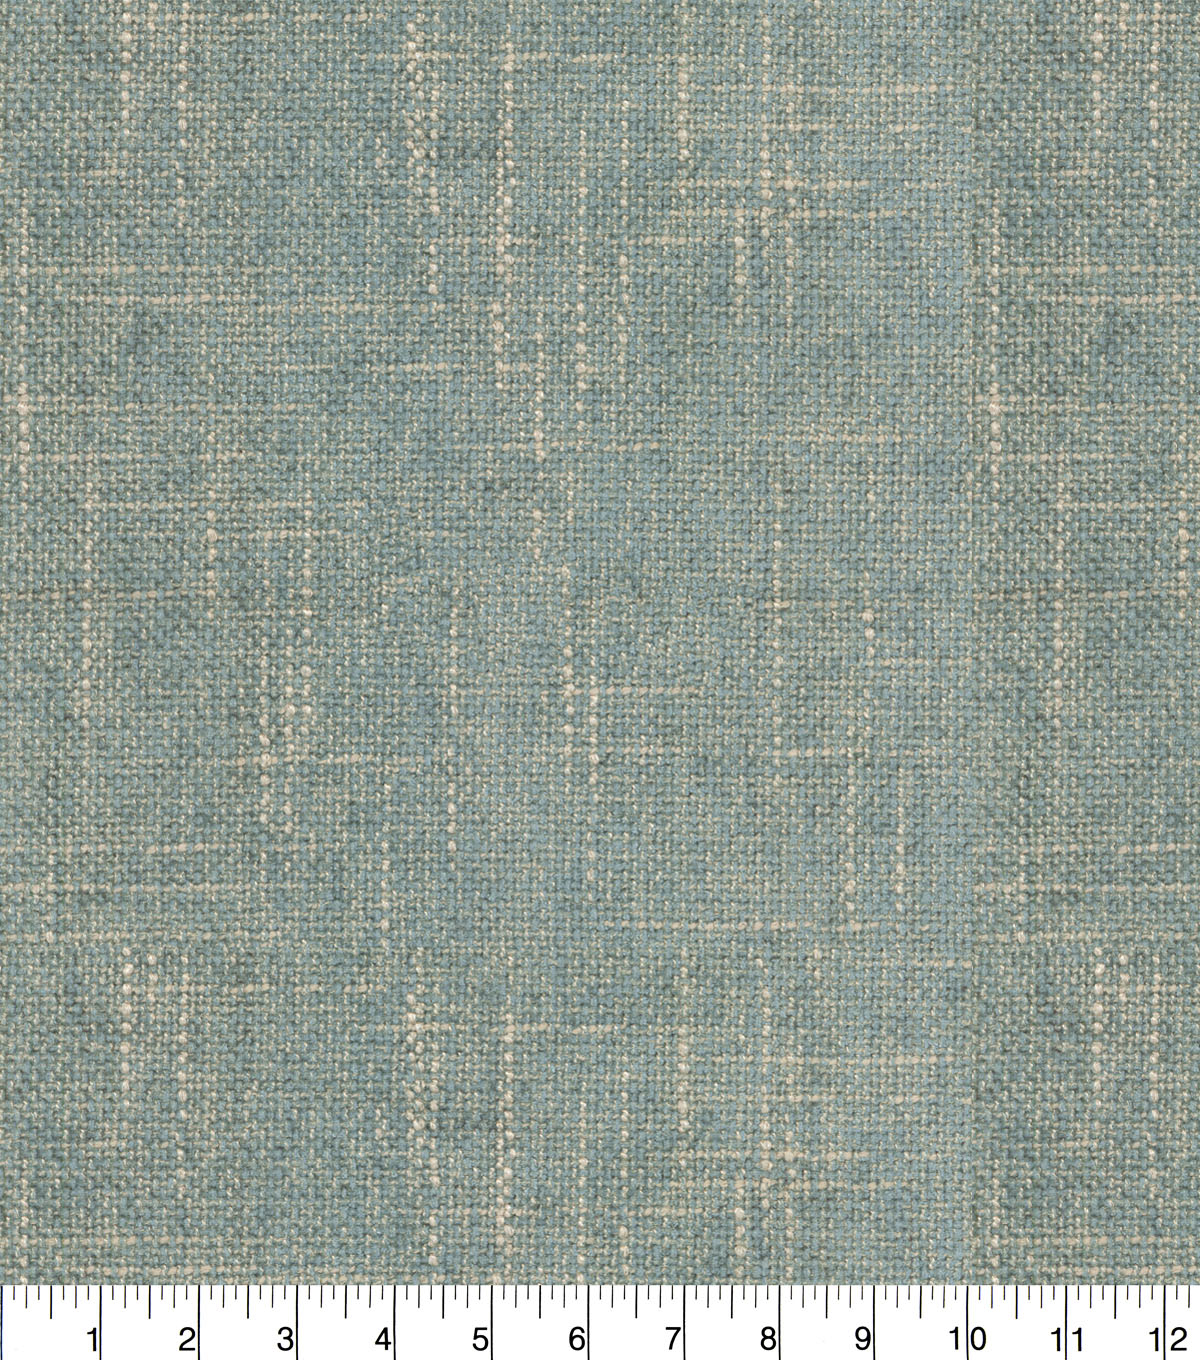 Home Decor 8\u0022x8\u0022 Fabric Swatch-P/K Lifestyles Mixology Lagoon